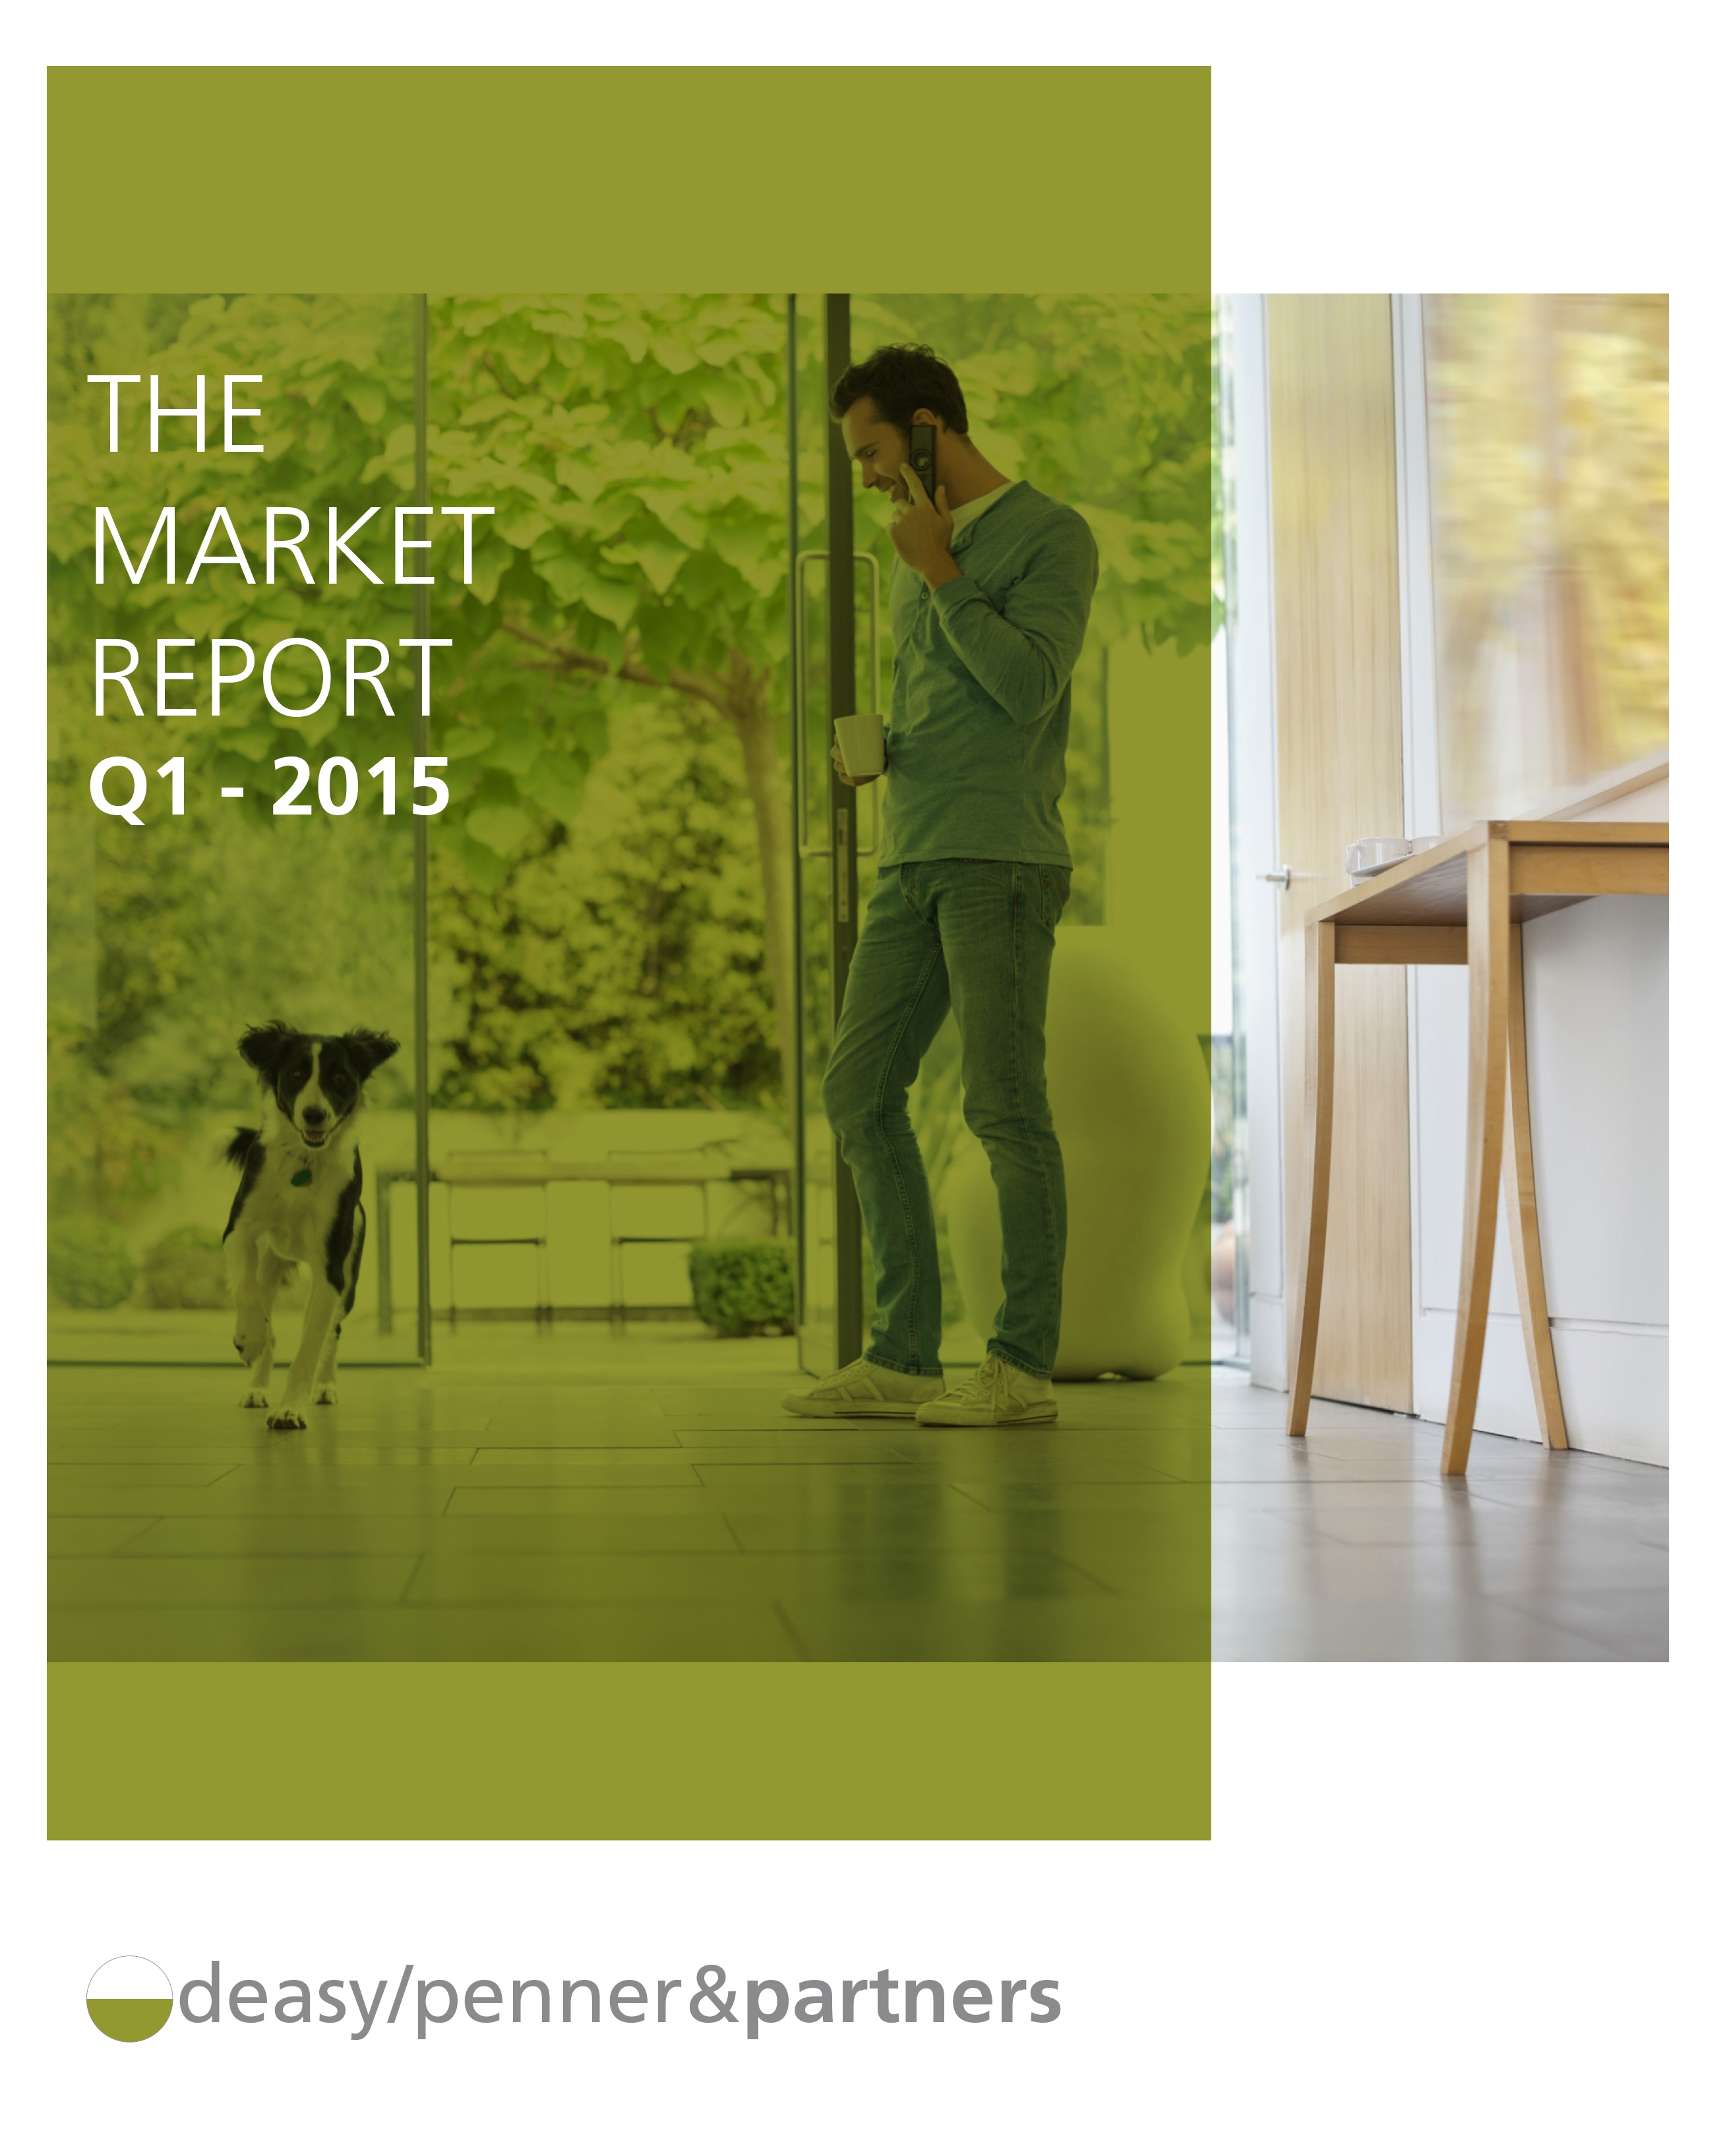 deasypenner_Q1_2015_Market_Report_cover